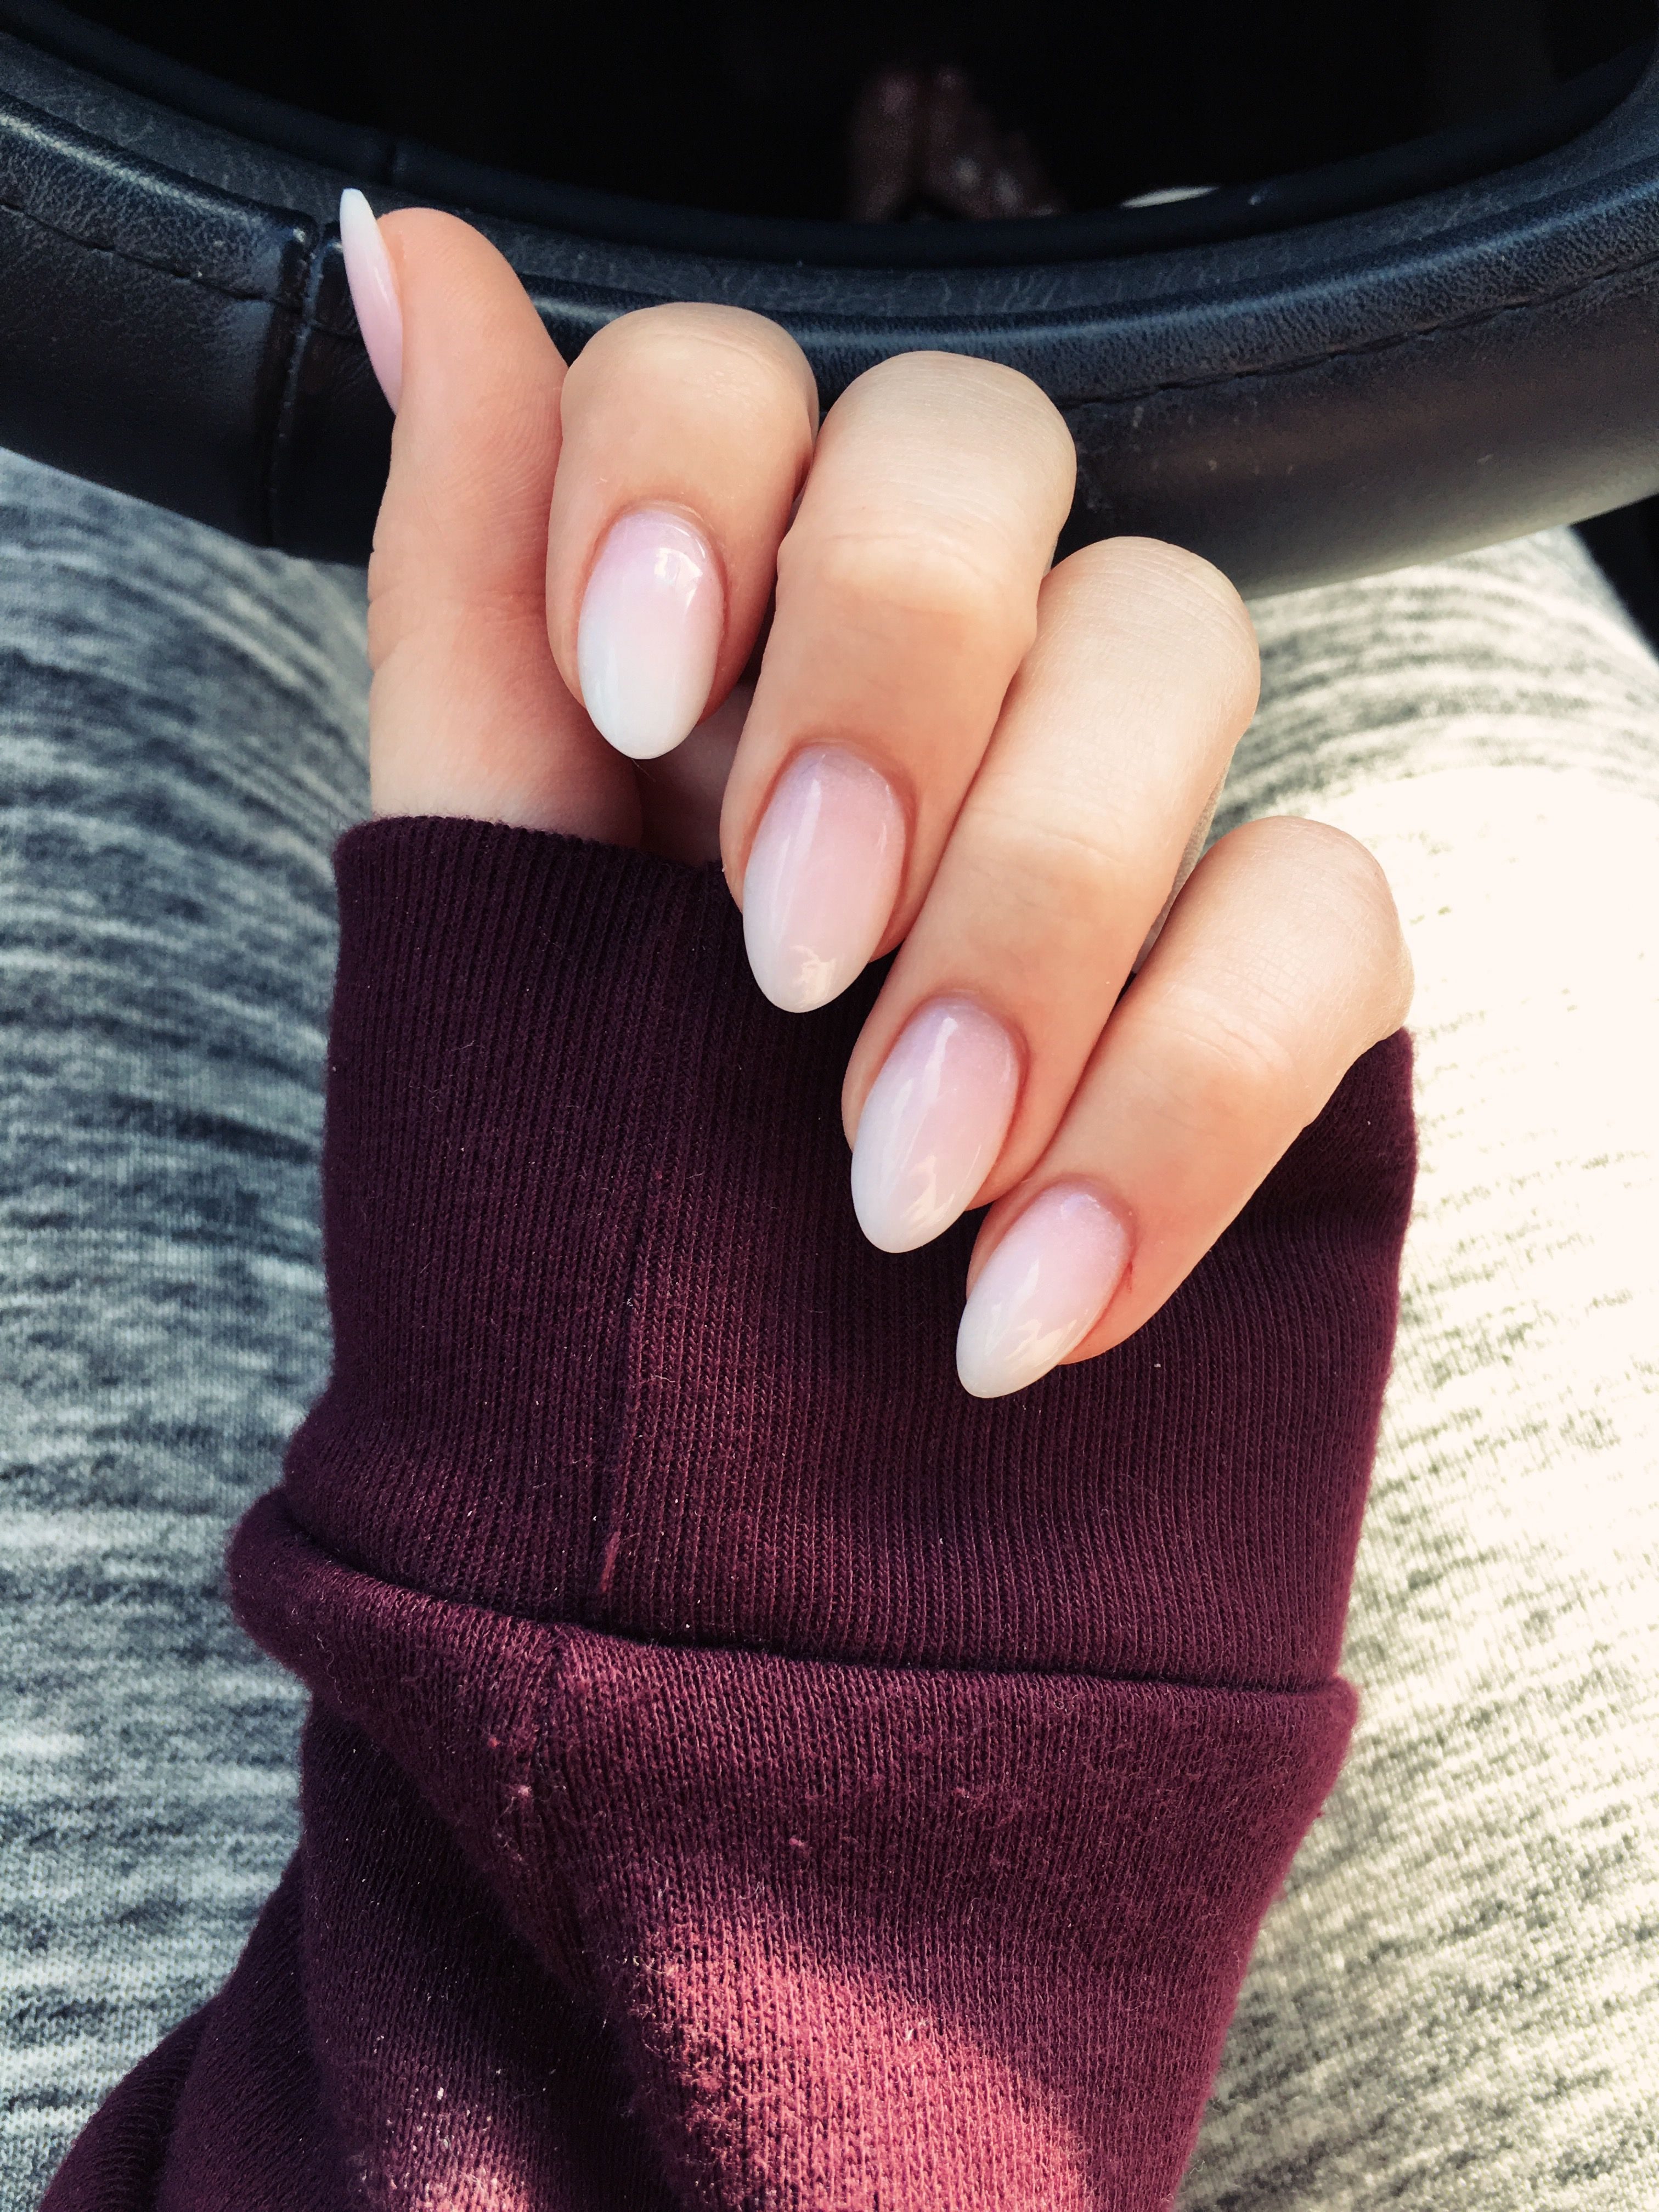 Spring Almond Nails Almond Nails Acrylic Instagram Amandabork Oval Nails Gel Nails Nail Designs